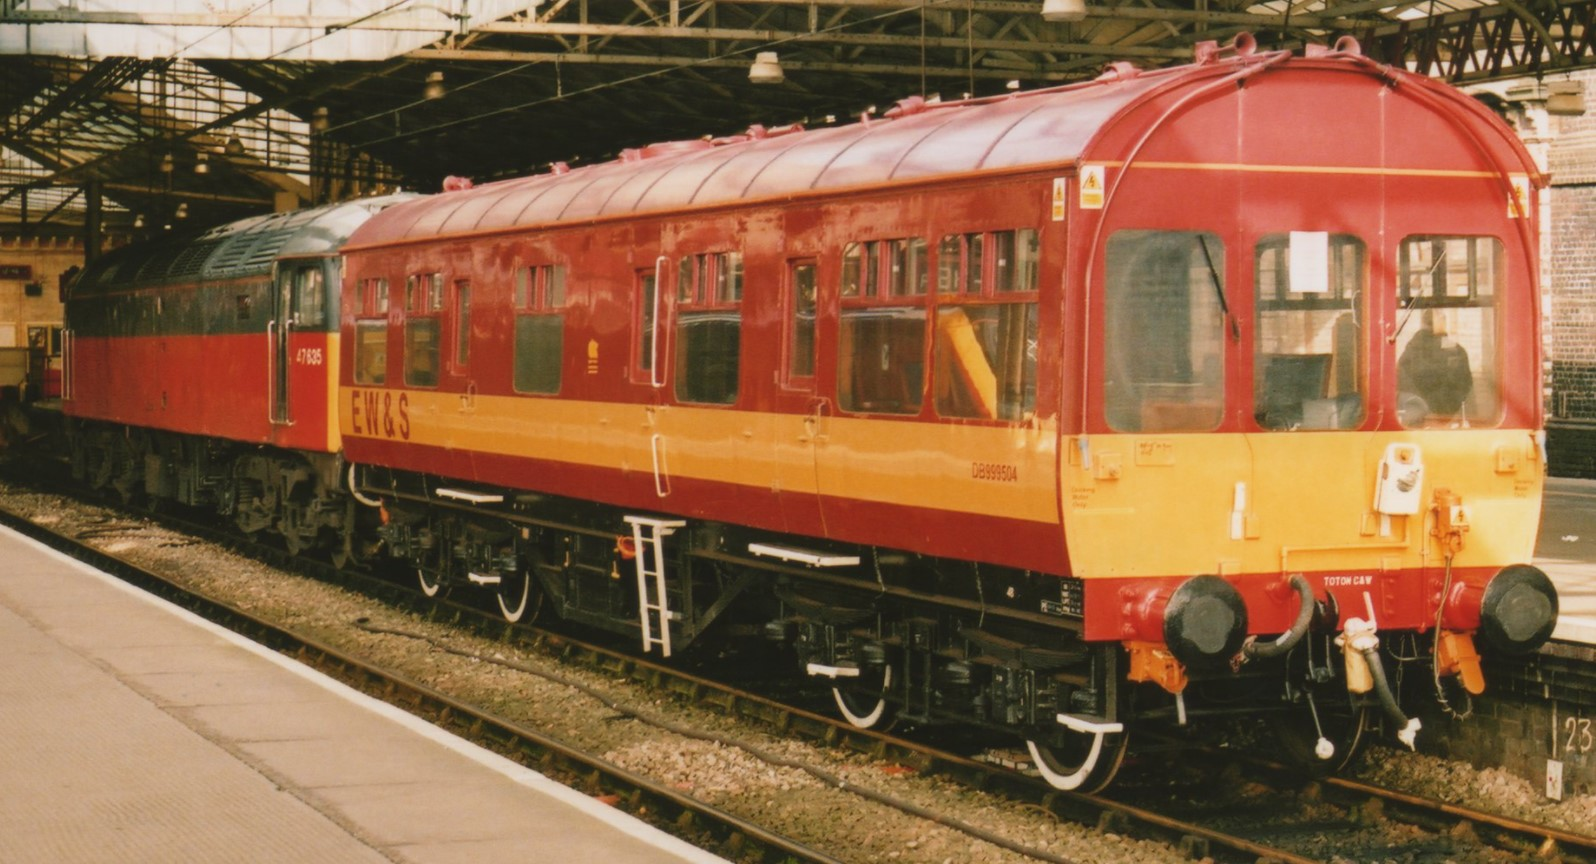 DB999504 hauled by 47635 at Crewe in February 2003. ©37190 'Dalzell'